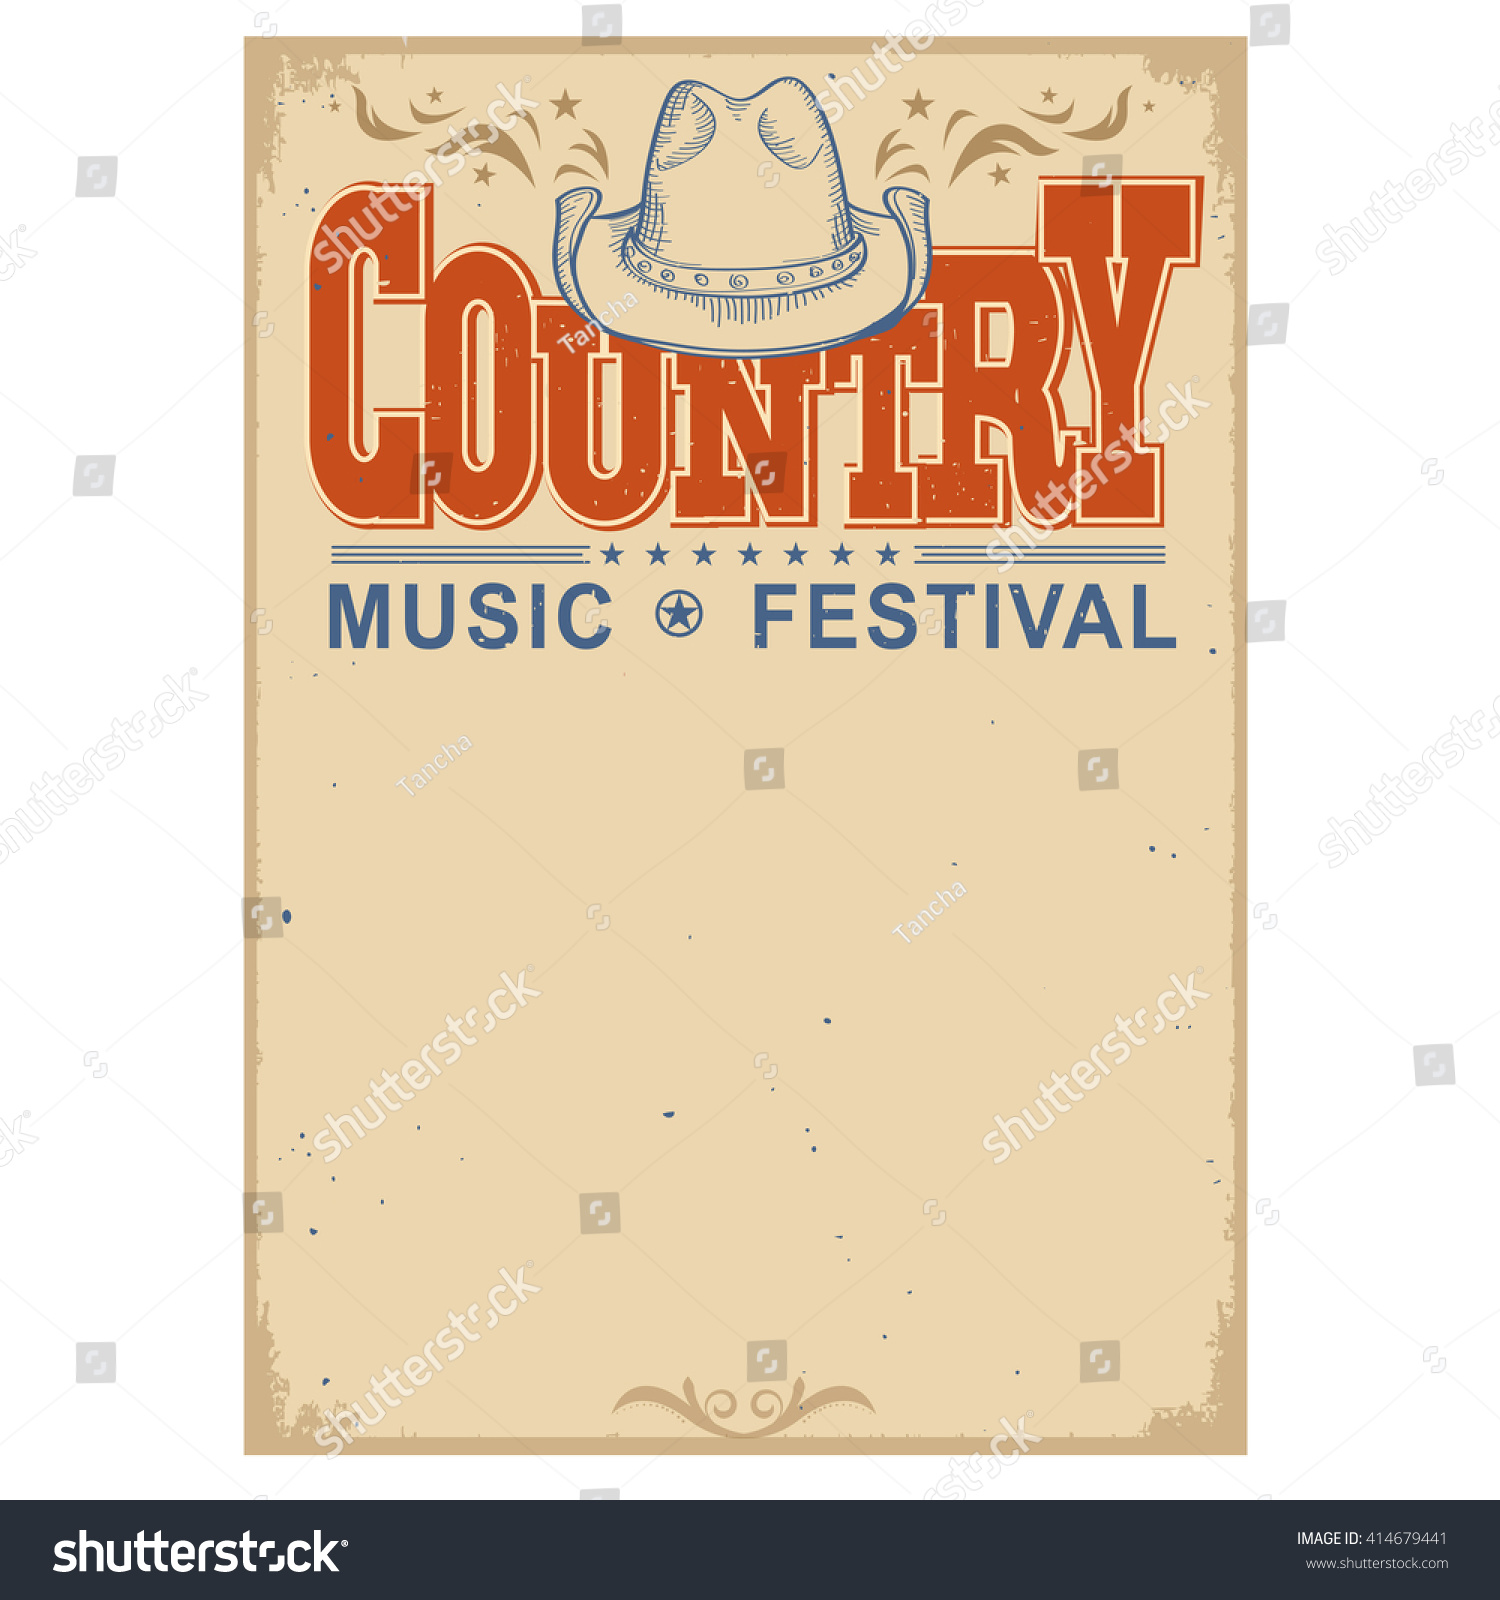 country music essay papers Country music, the queer, and the redneck nadine hubbs in 2003, i sent to press a book on us classical music and sexuality called the queer composition of america's sound and i started work on a new book project about us country music and sexuality, now in relation to socioeco- nomic class.